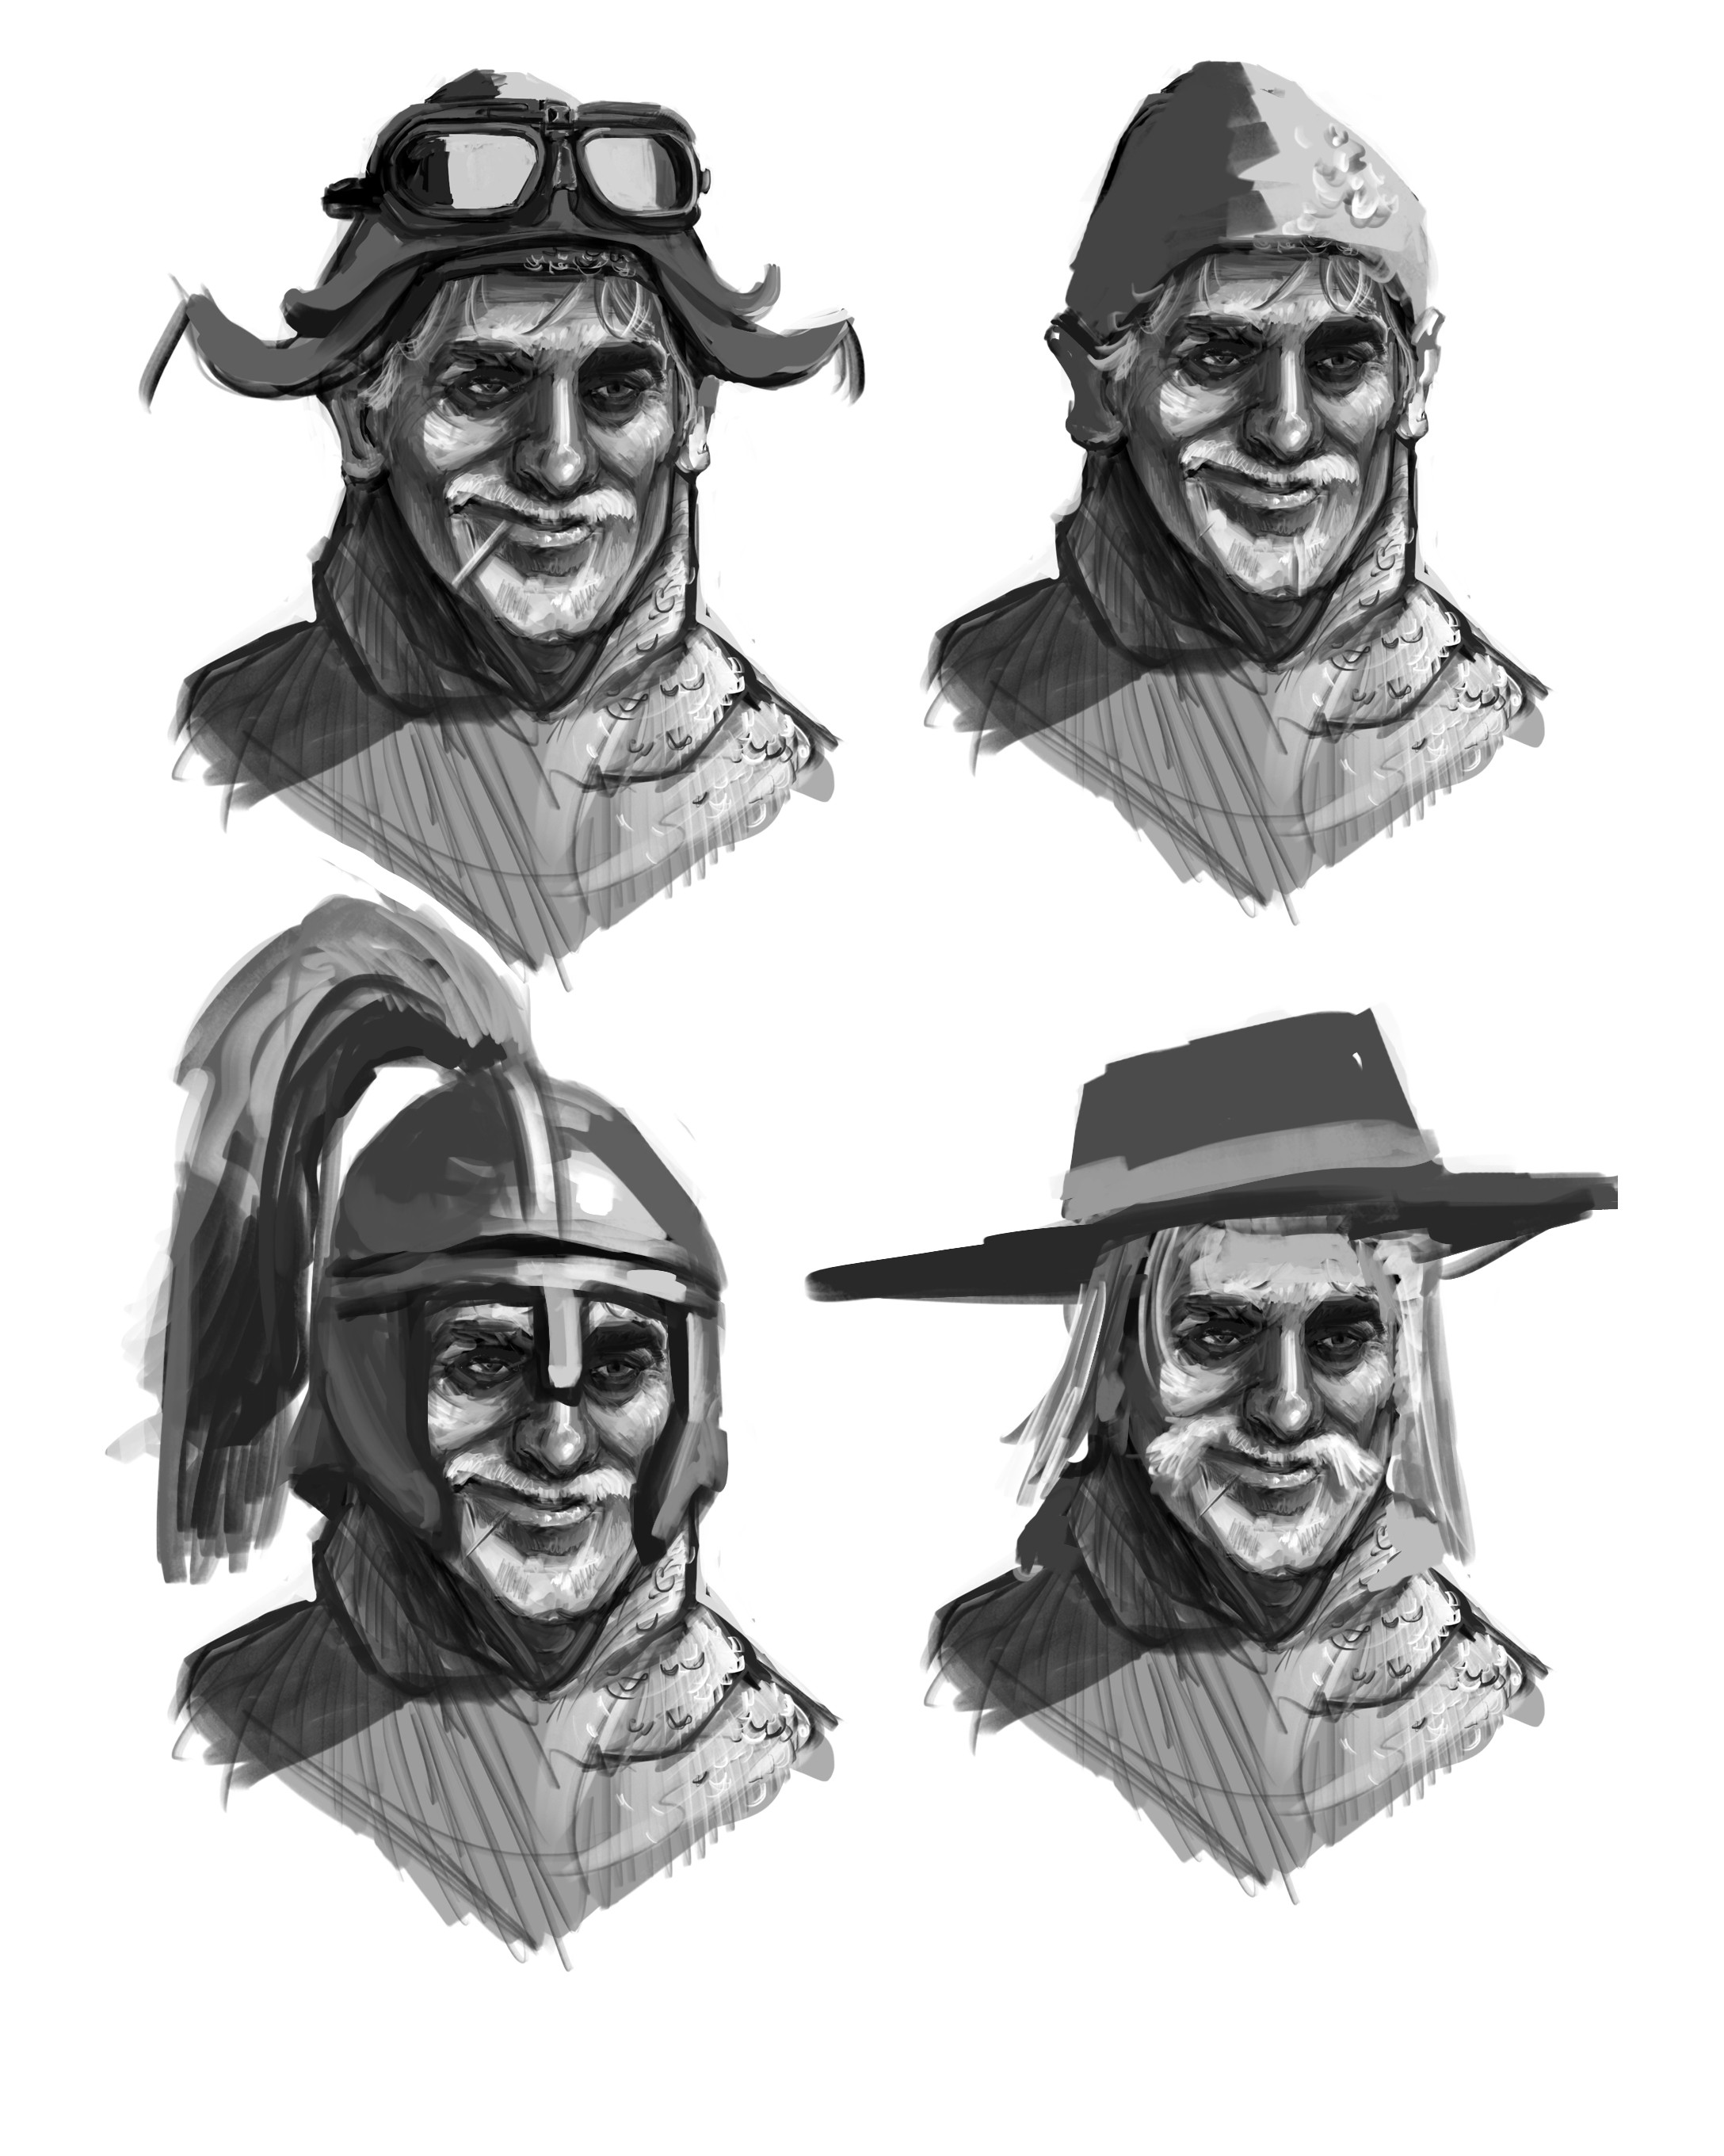 Different hat options